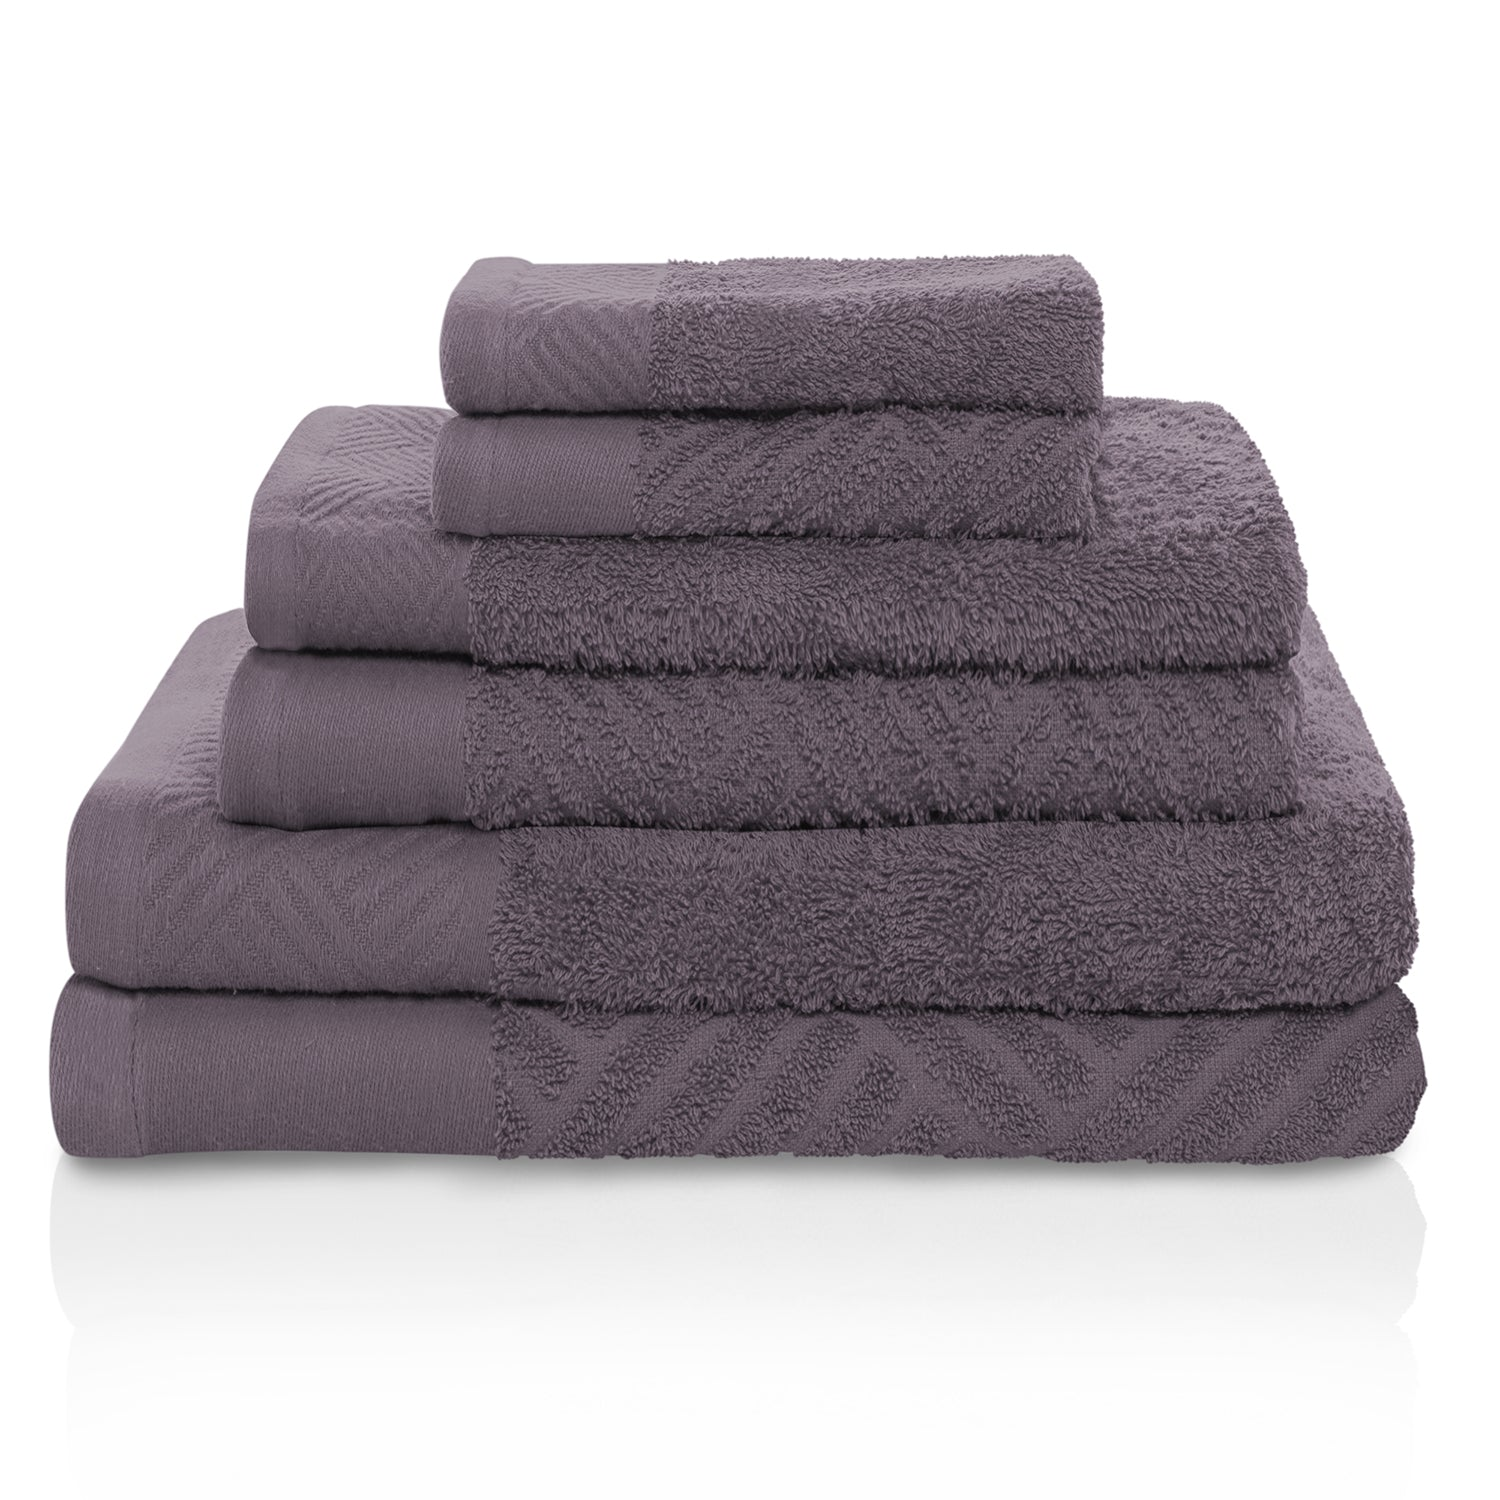 100% Egyptian Cotton 6 PC Basket Weave- Jacquard And Solid Towel Set